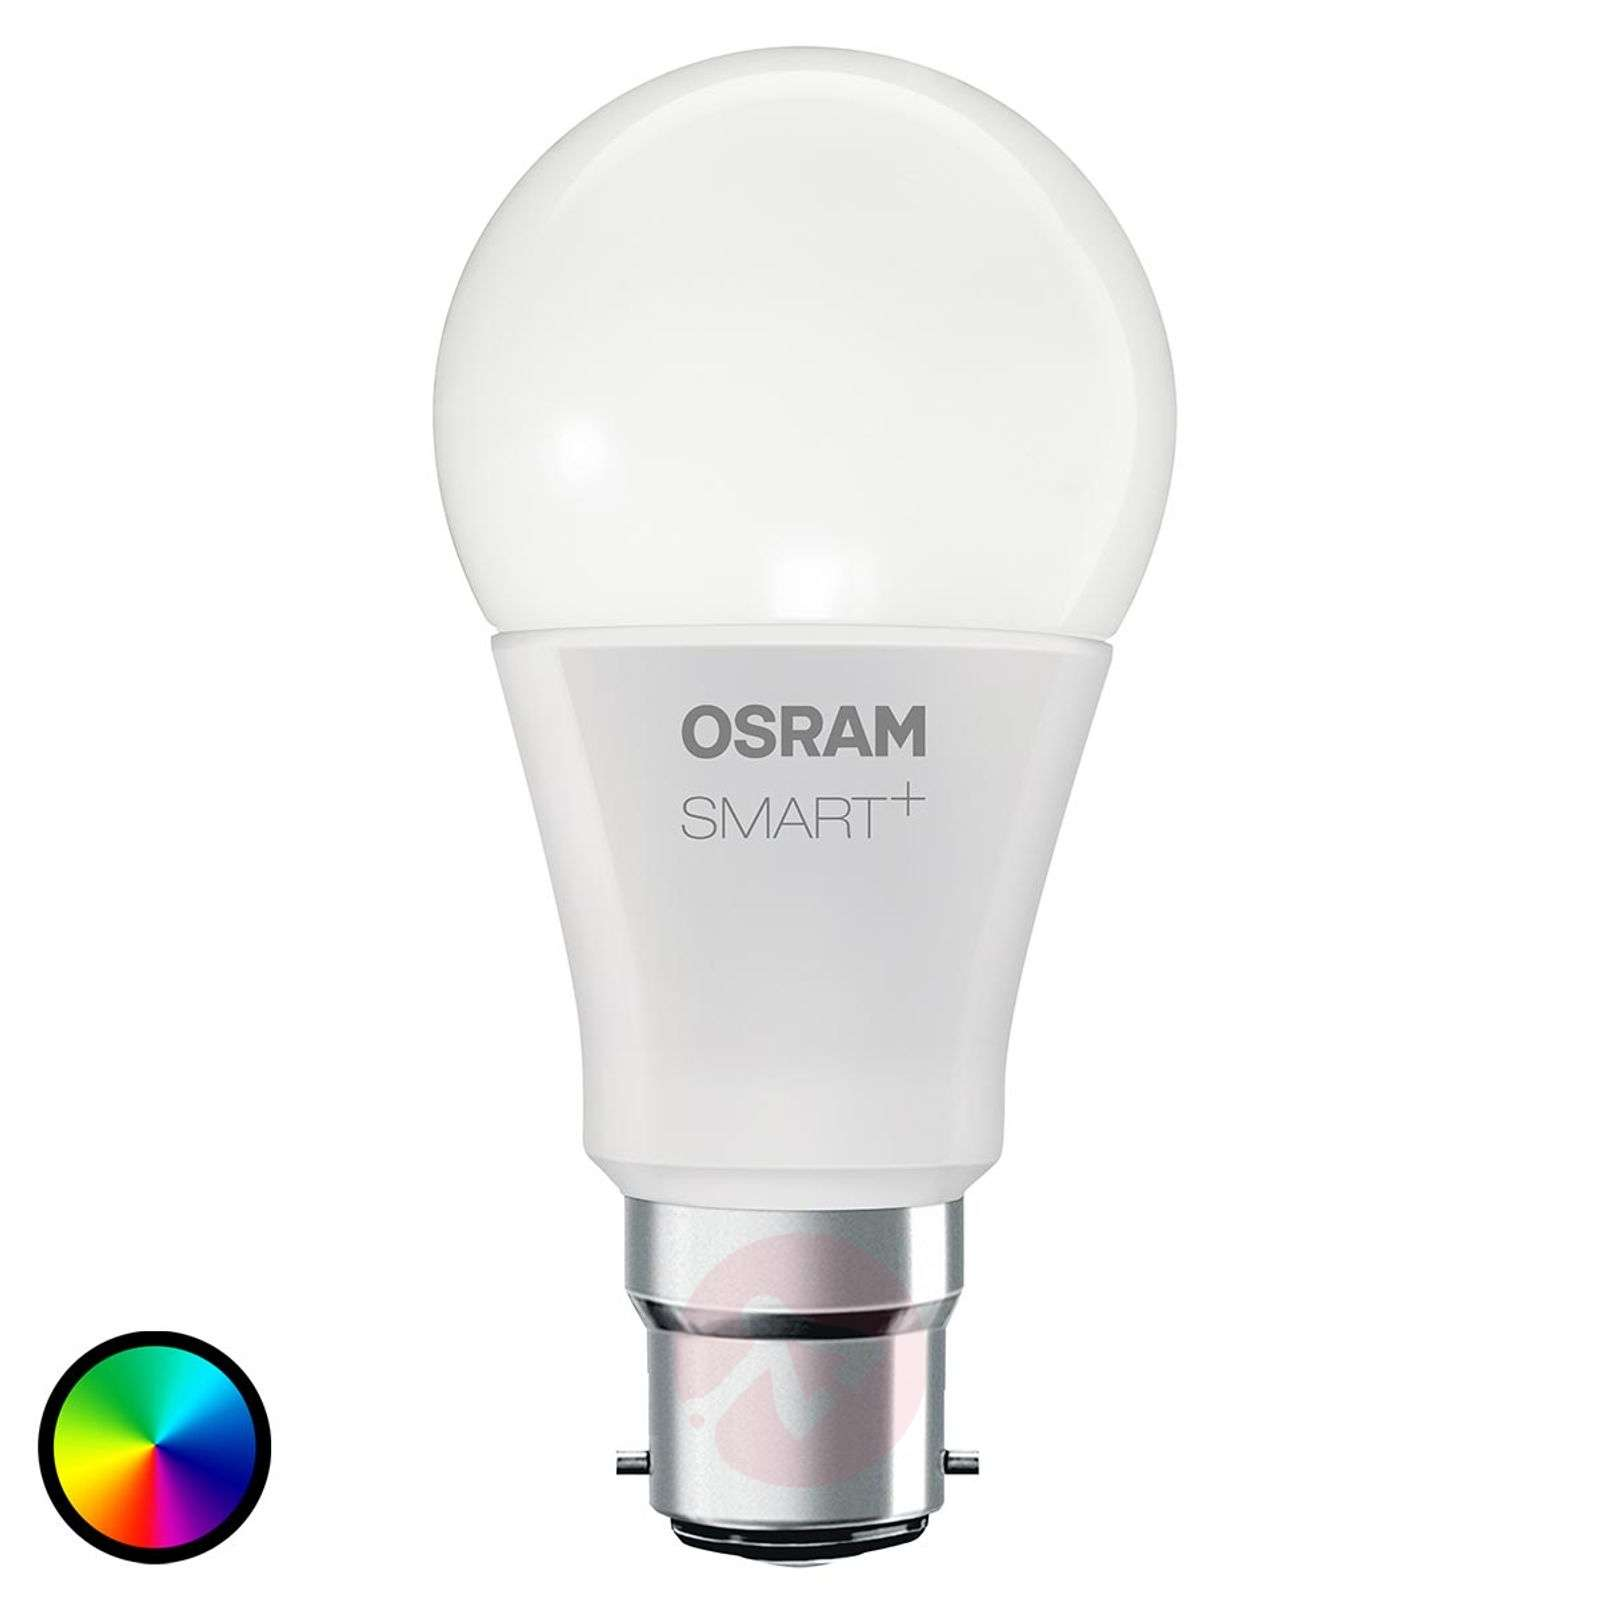 SMART+ LED B22 10W, RGBW, 800 lm, dimmable-7262125-01